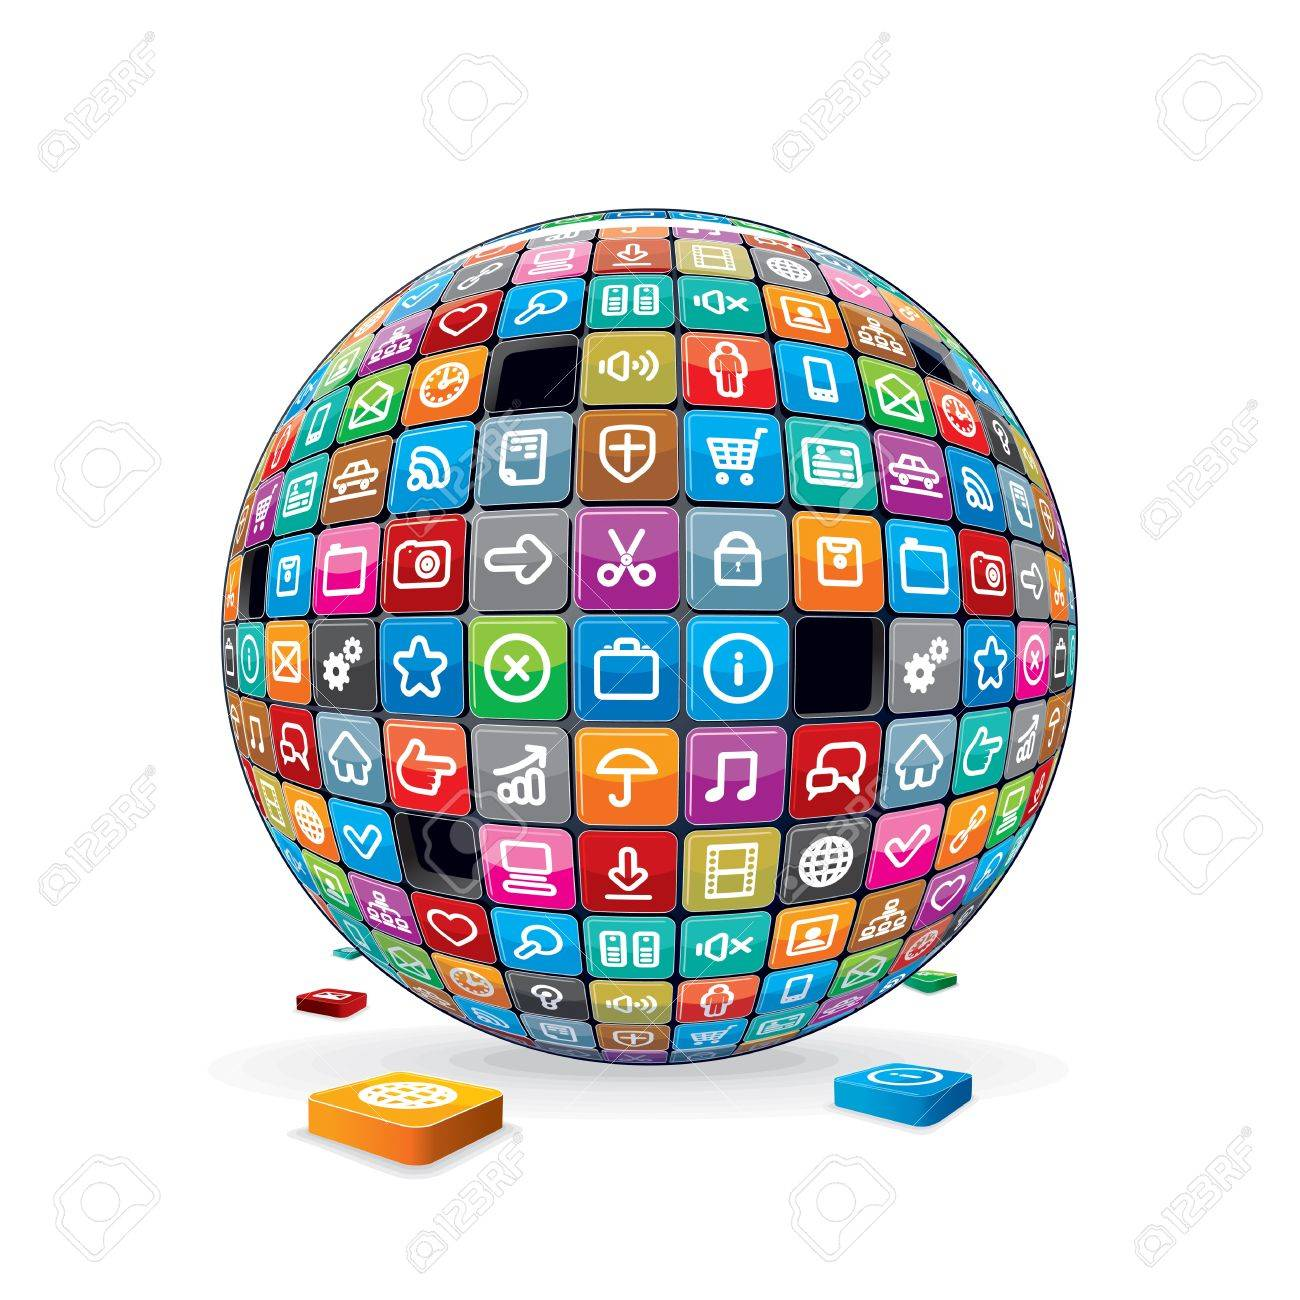 Abstract Sphere with Application Icons  Vector Stock Vector - 18002185